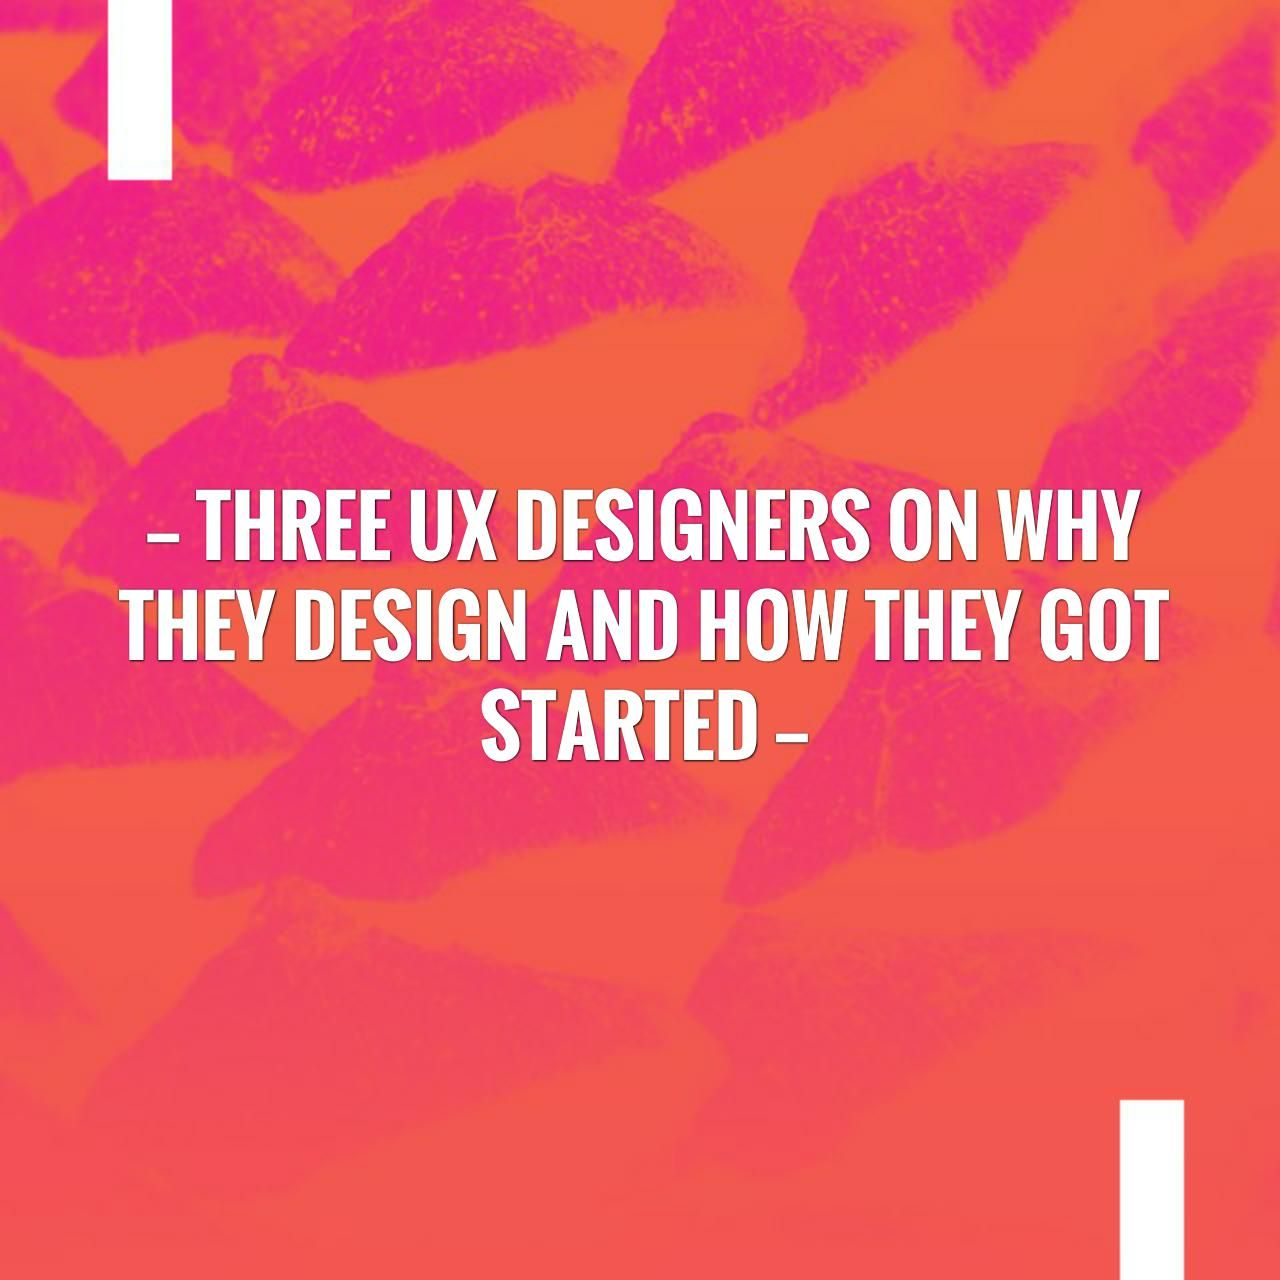 Three UX Designers on Why They Design and How They Got